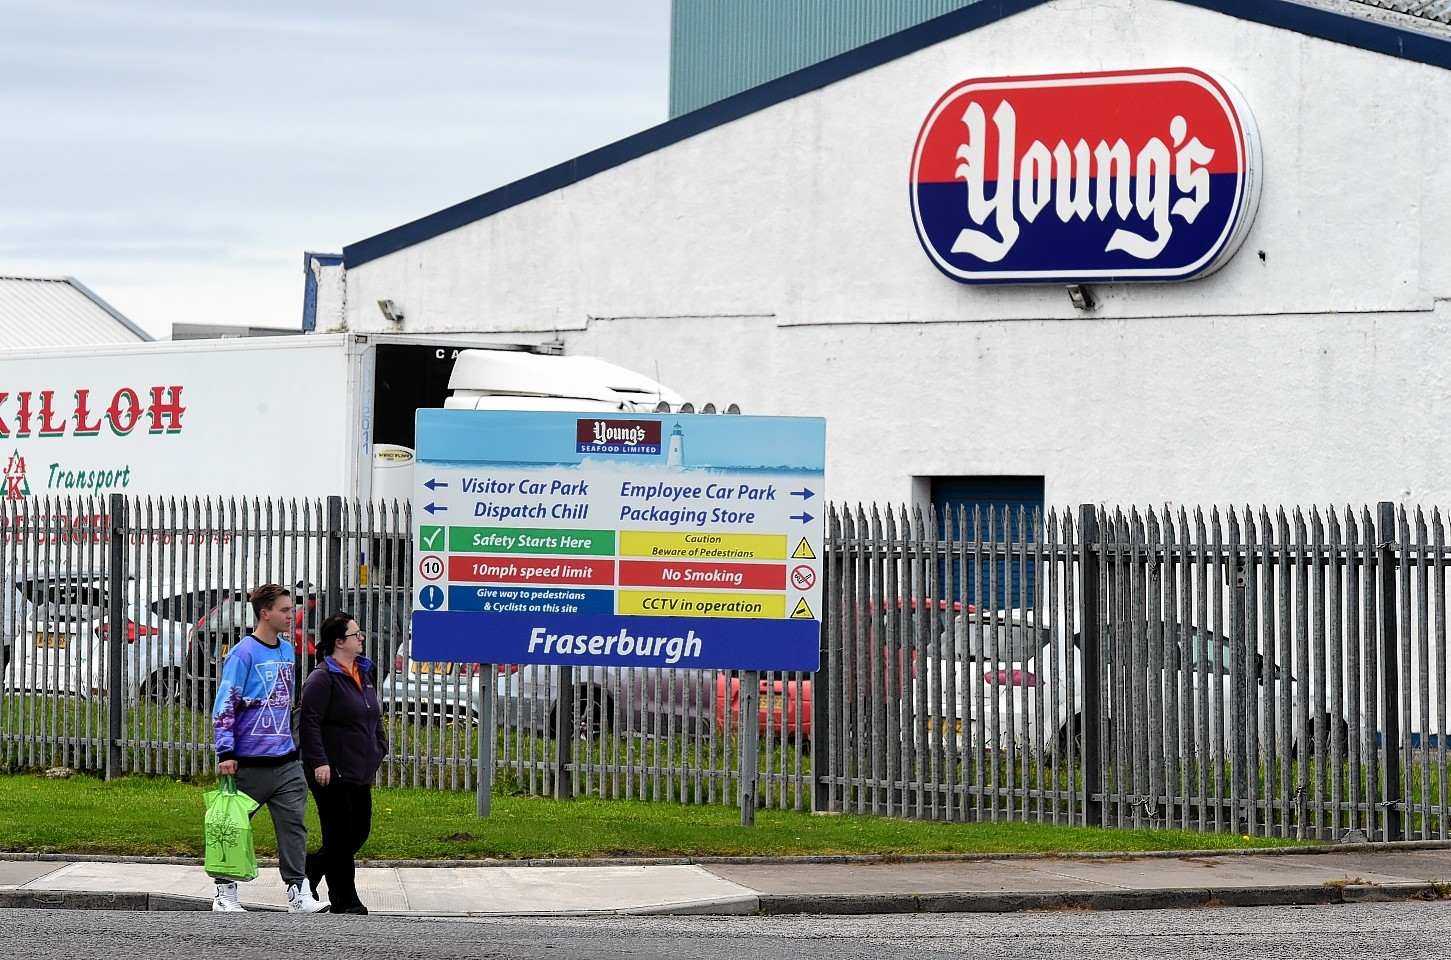 About 600 people were made redundant from Young's Seafood in Fraserburgh.